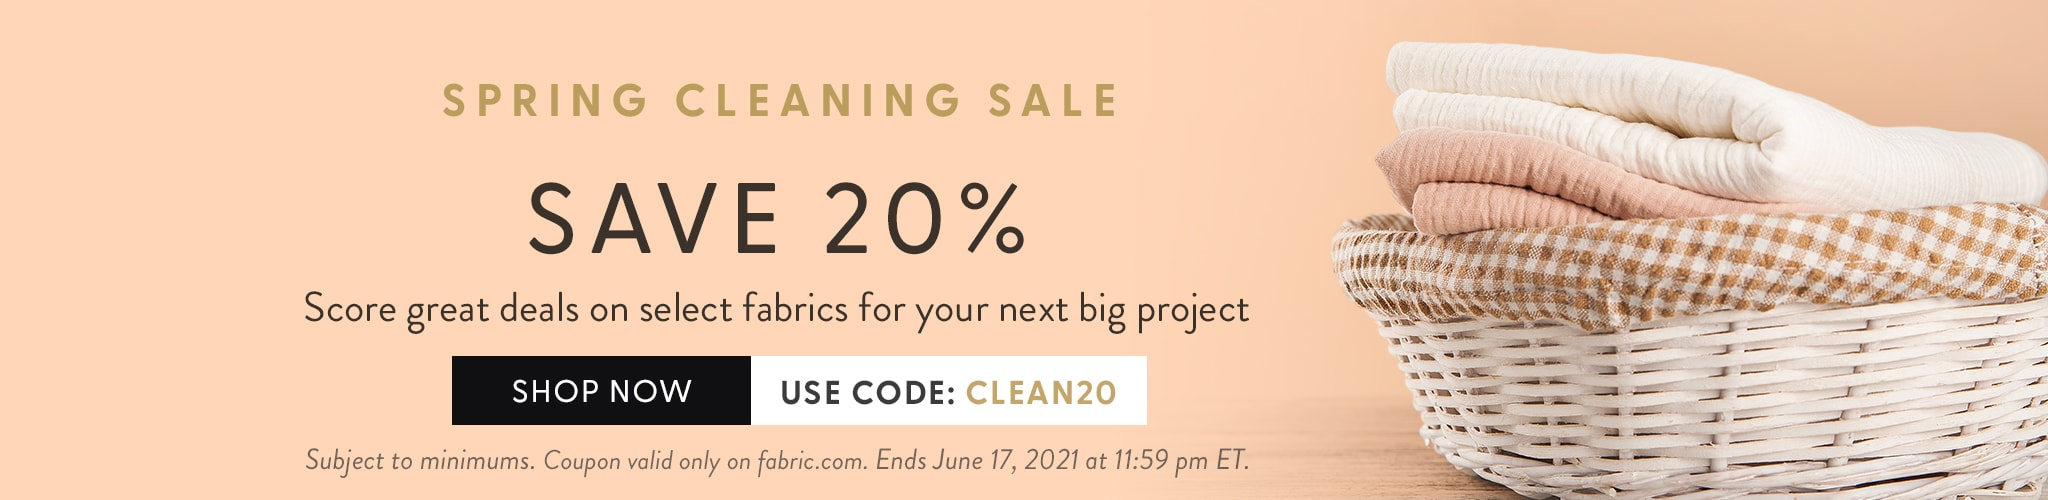 Spring Cleaning Sale. Save 20%. Score great deals on select fabrics for your next big project. Use code clean20